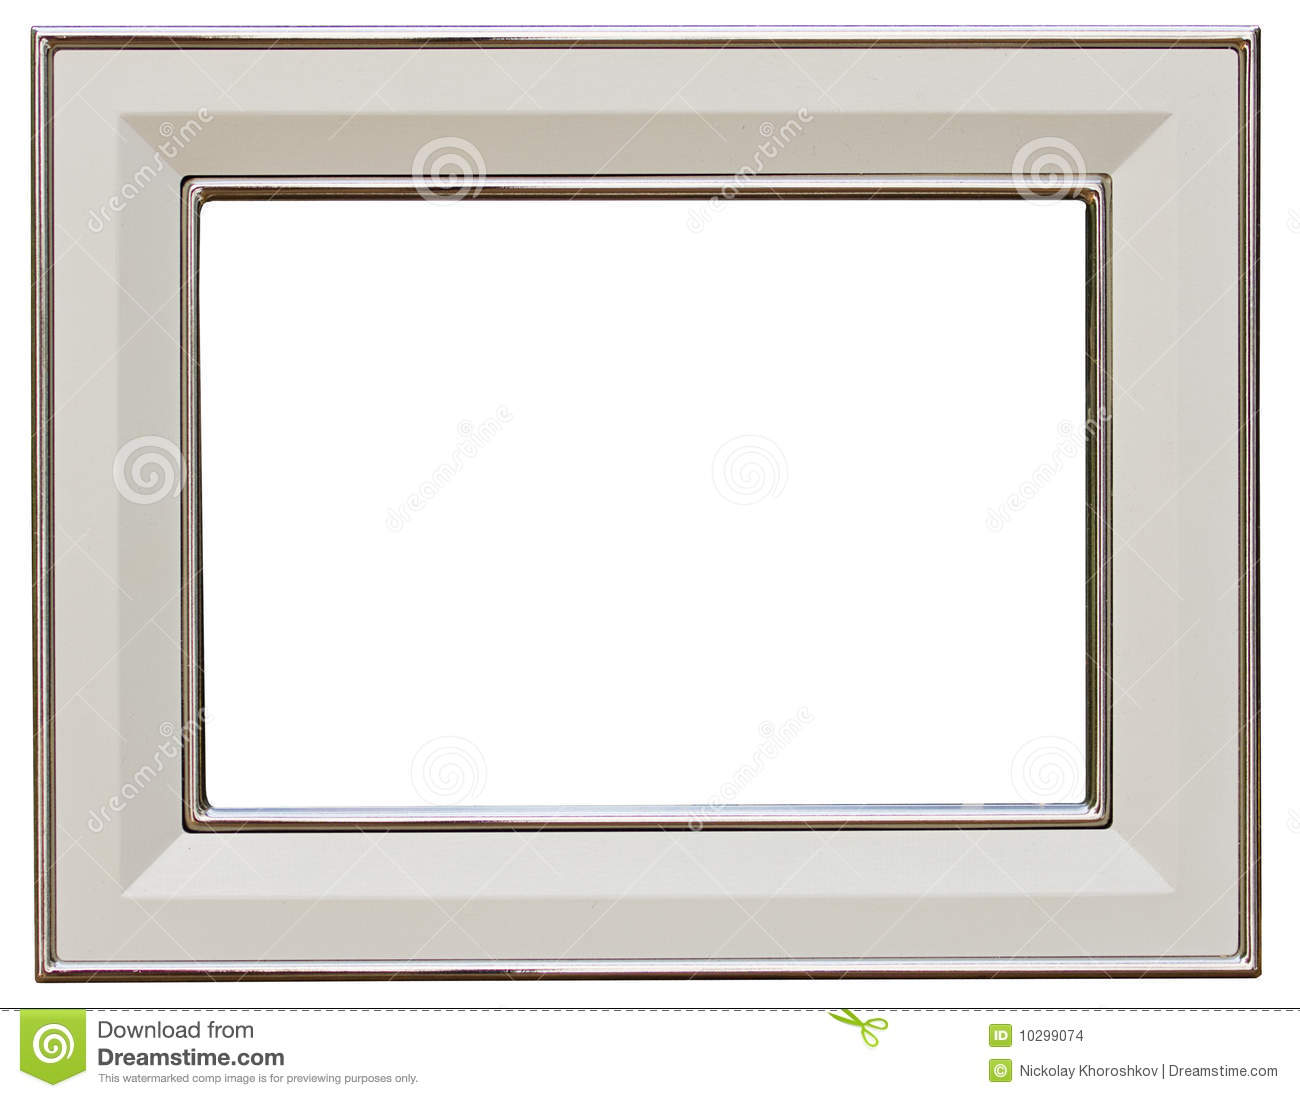 Silver Picture Frame Stock Images - Image: 10299074